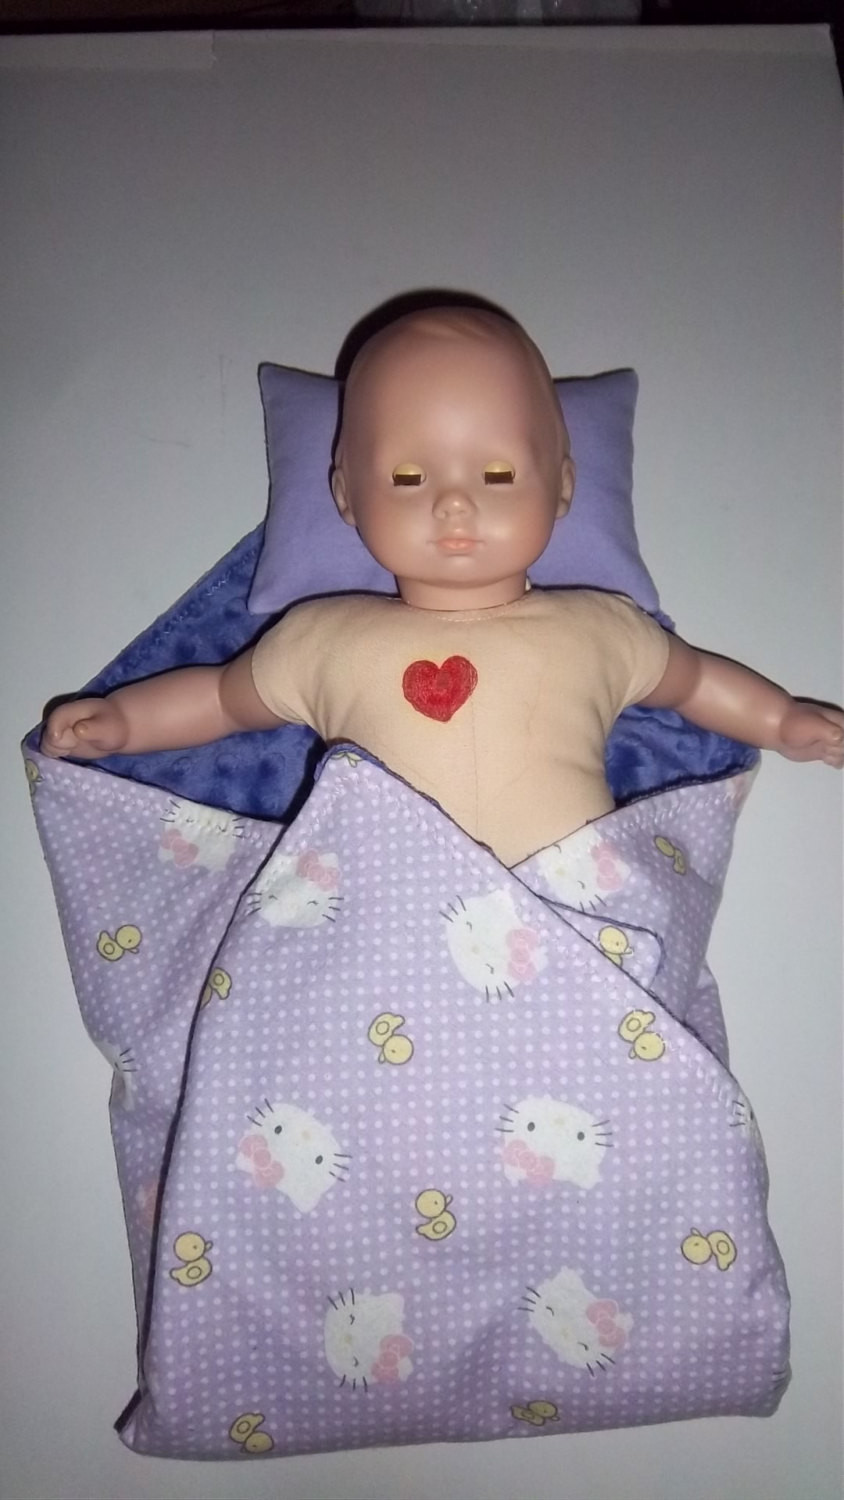 baby doll blanket kitty cat ducks bows